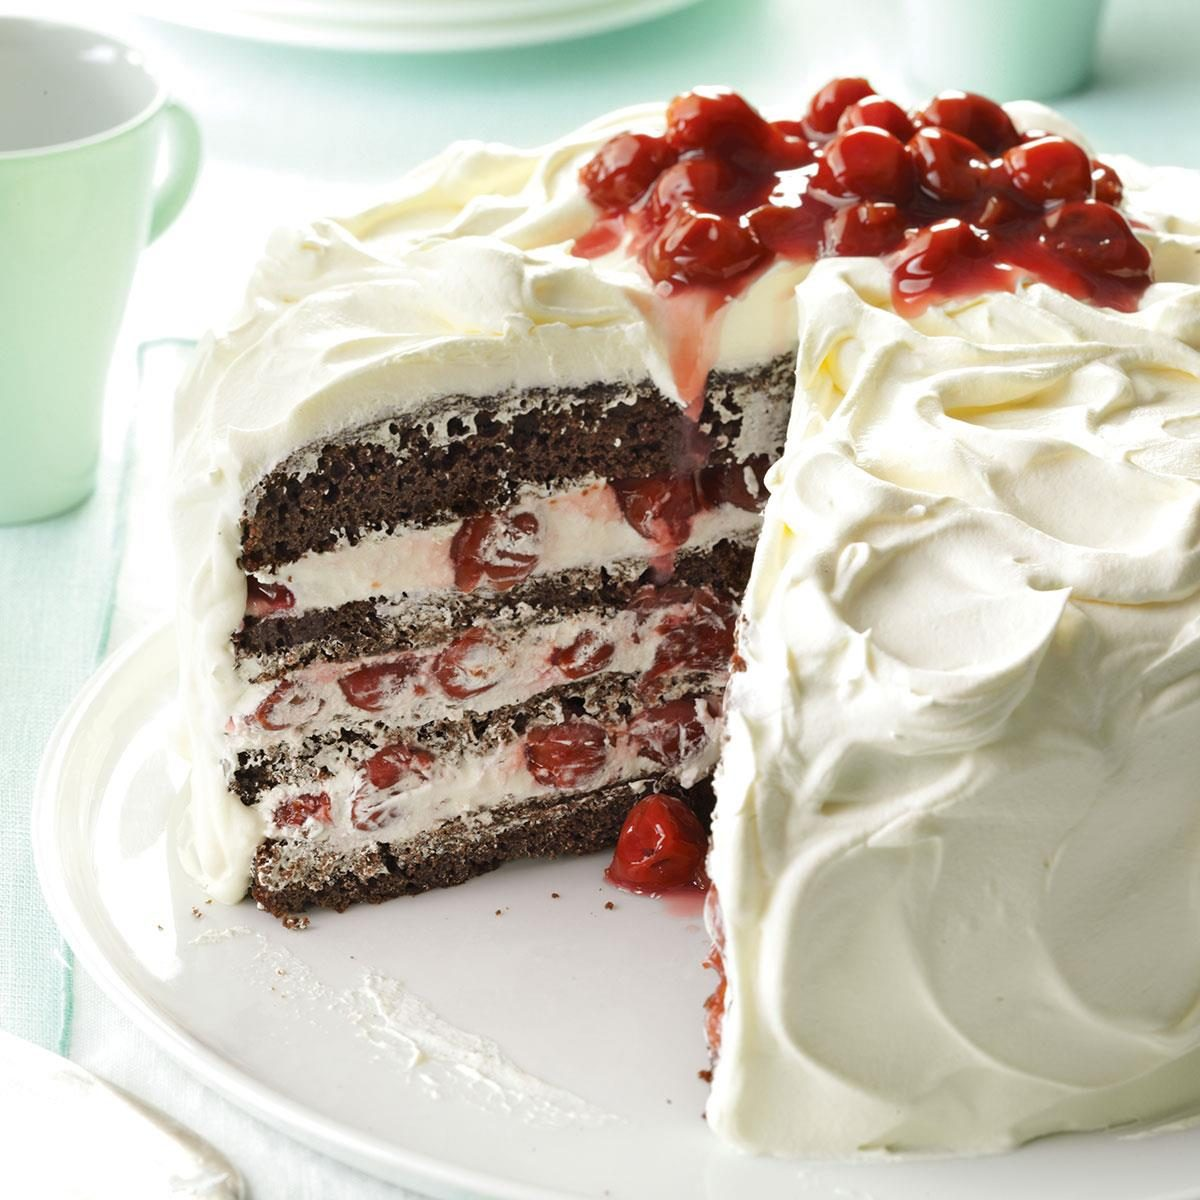 Black forest cake recipe at home